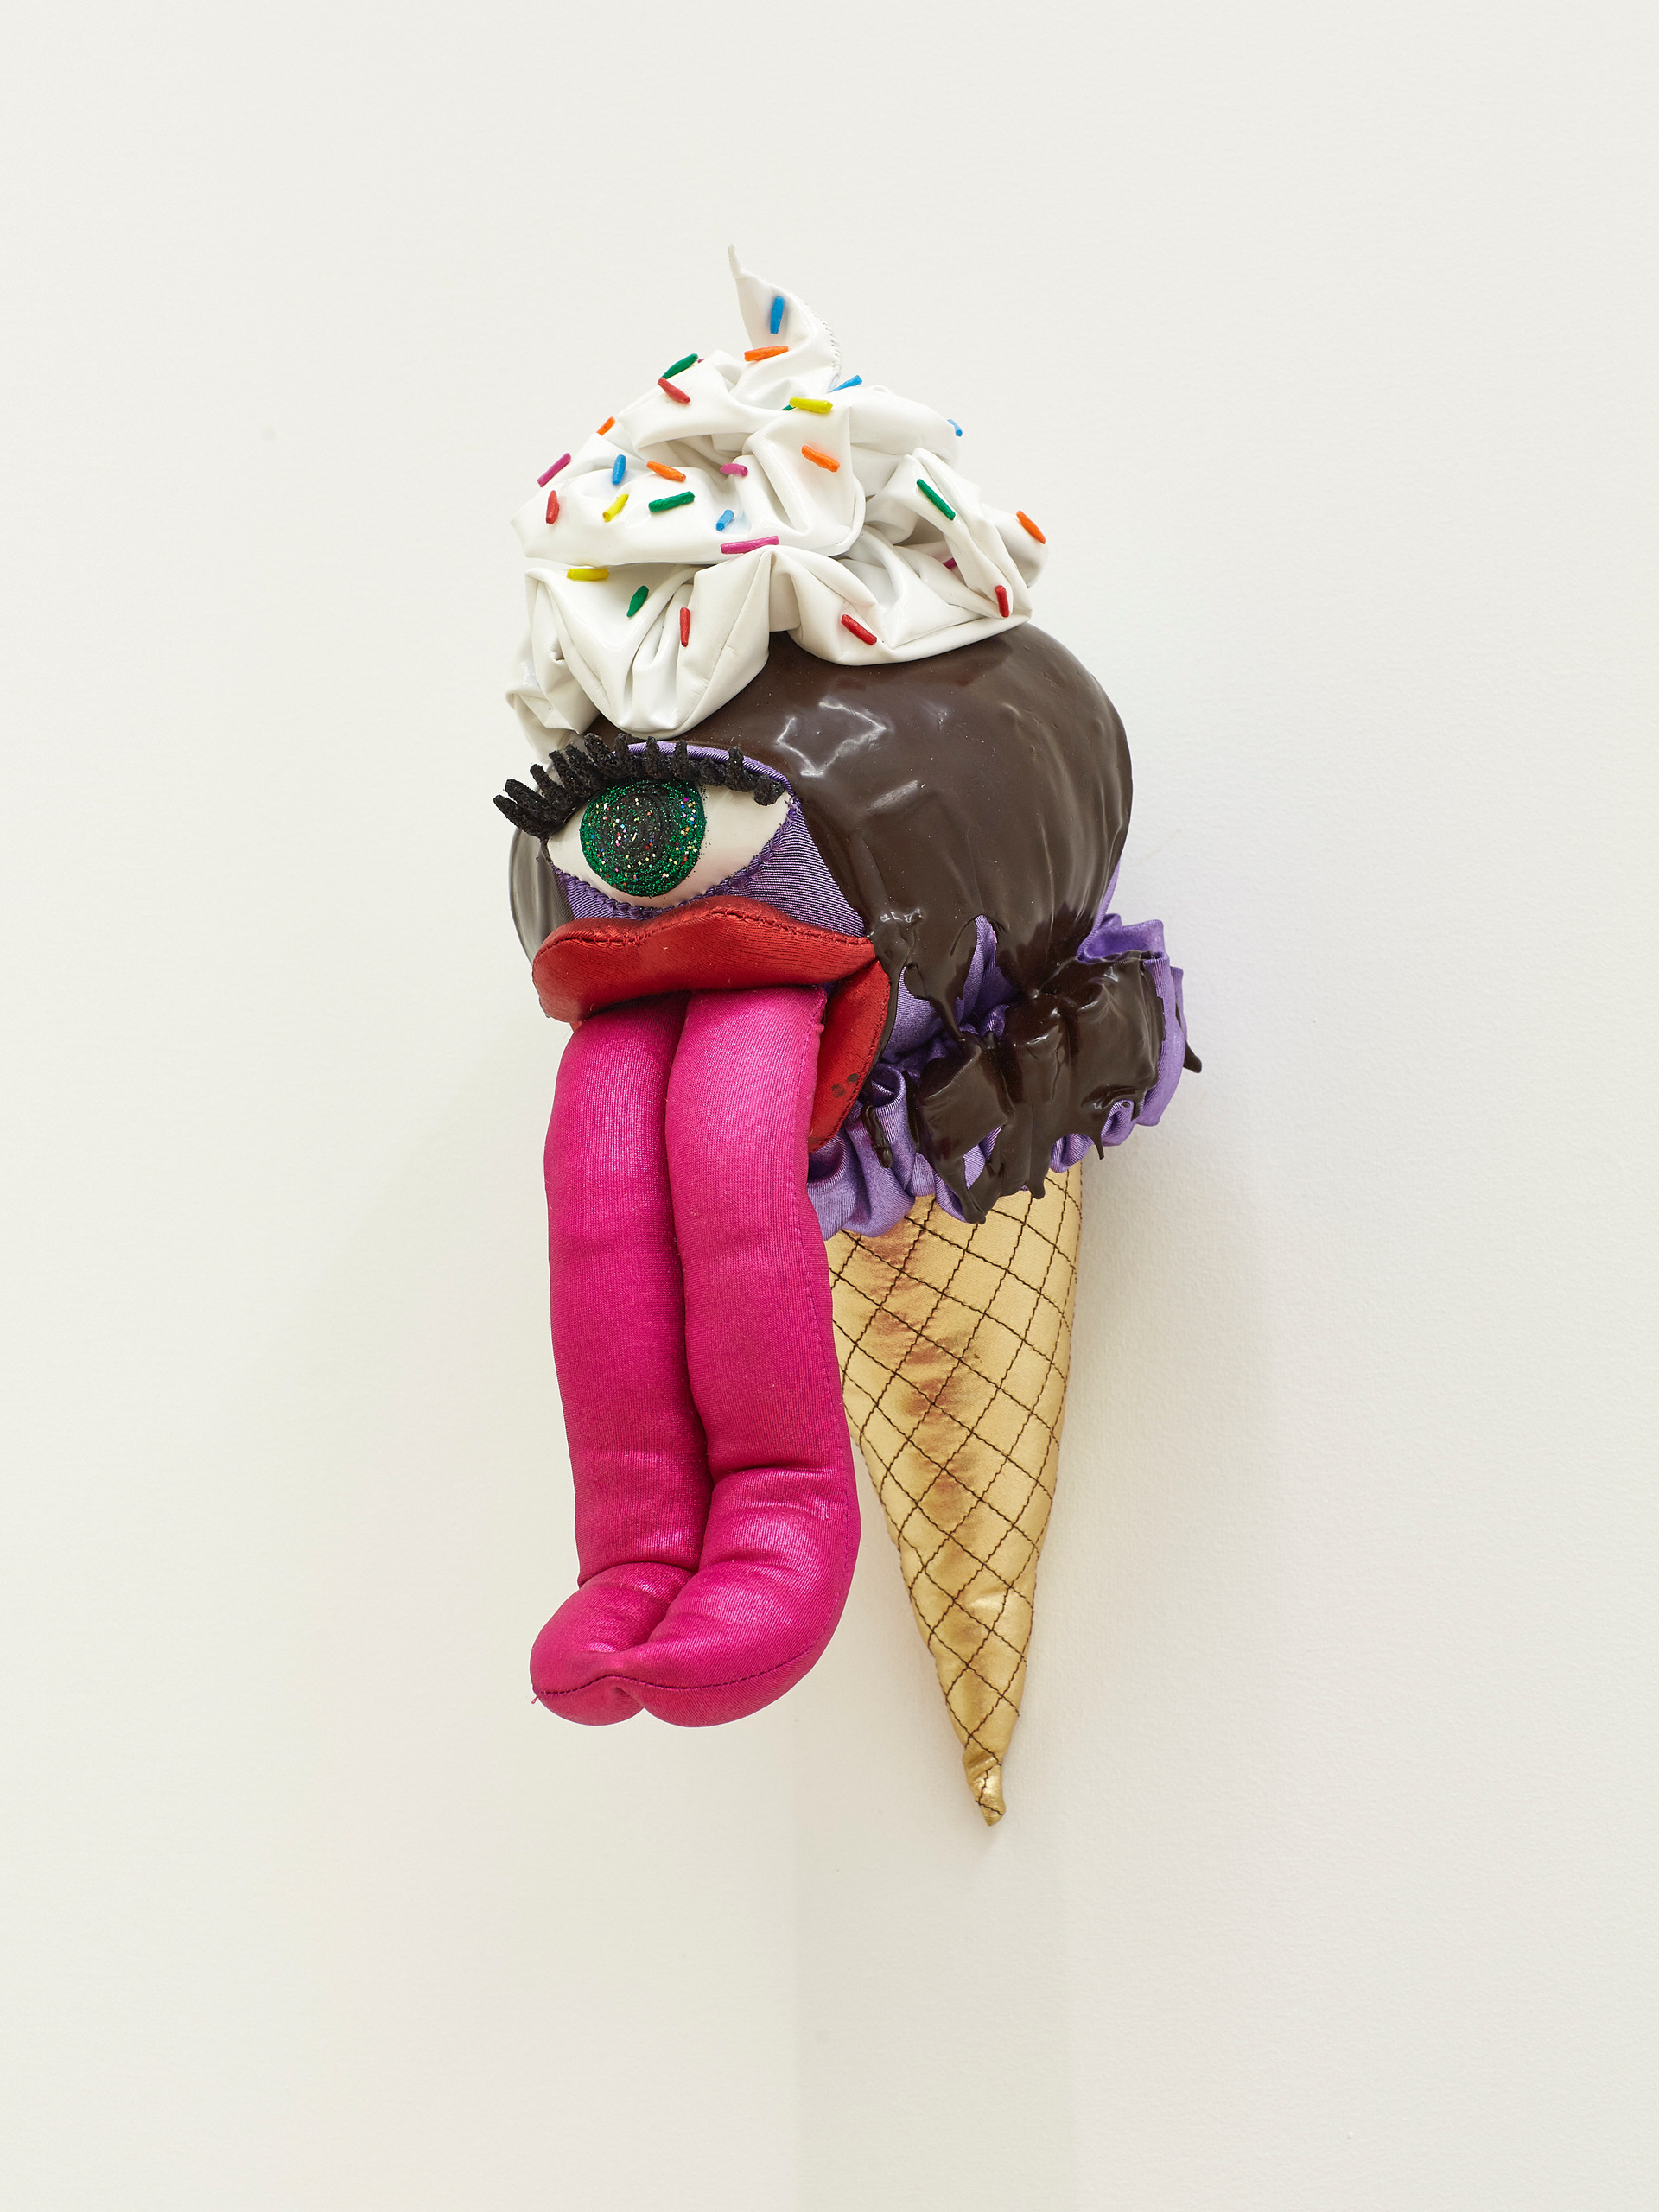 Lavender with Chocolate Sauce, Whipped Cream, and Rainbow Sprinkles, 2019 Acrylic, felt, fiberfill, glitter, modeling clay, spandex, string, wire, and vinyl 11 x 5.5 x 9 inches